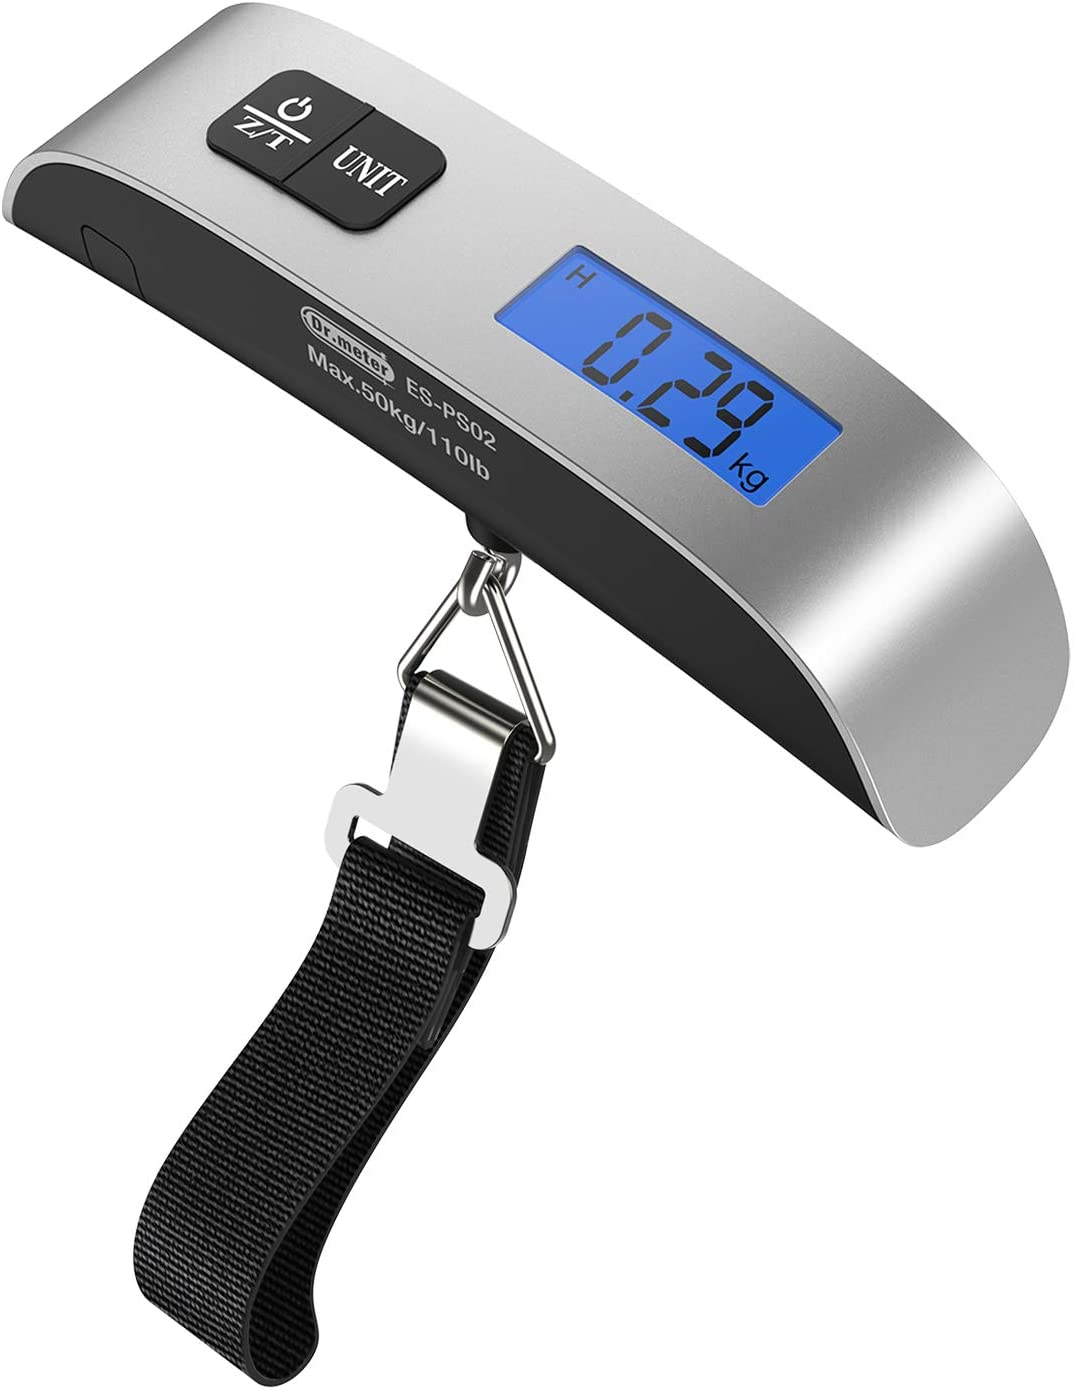 Digital Luggage Weight Scale Portable Scale for Travel Household and Gift Temperature Sensor Battery Indicator LCD display 1 Pack